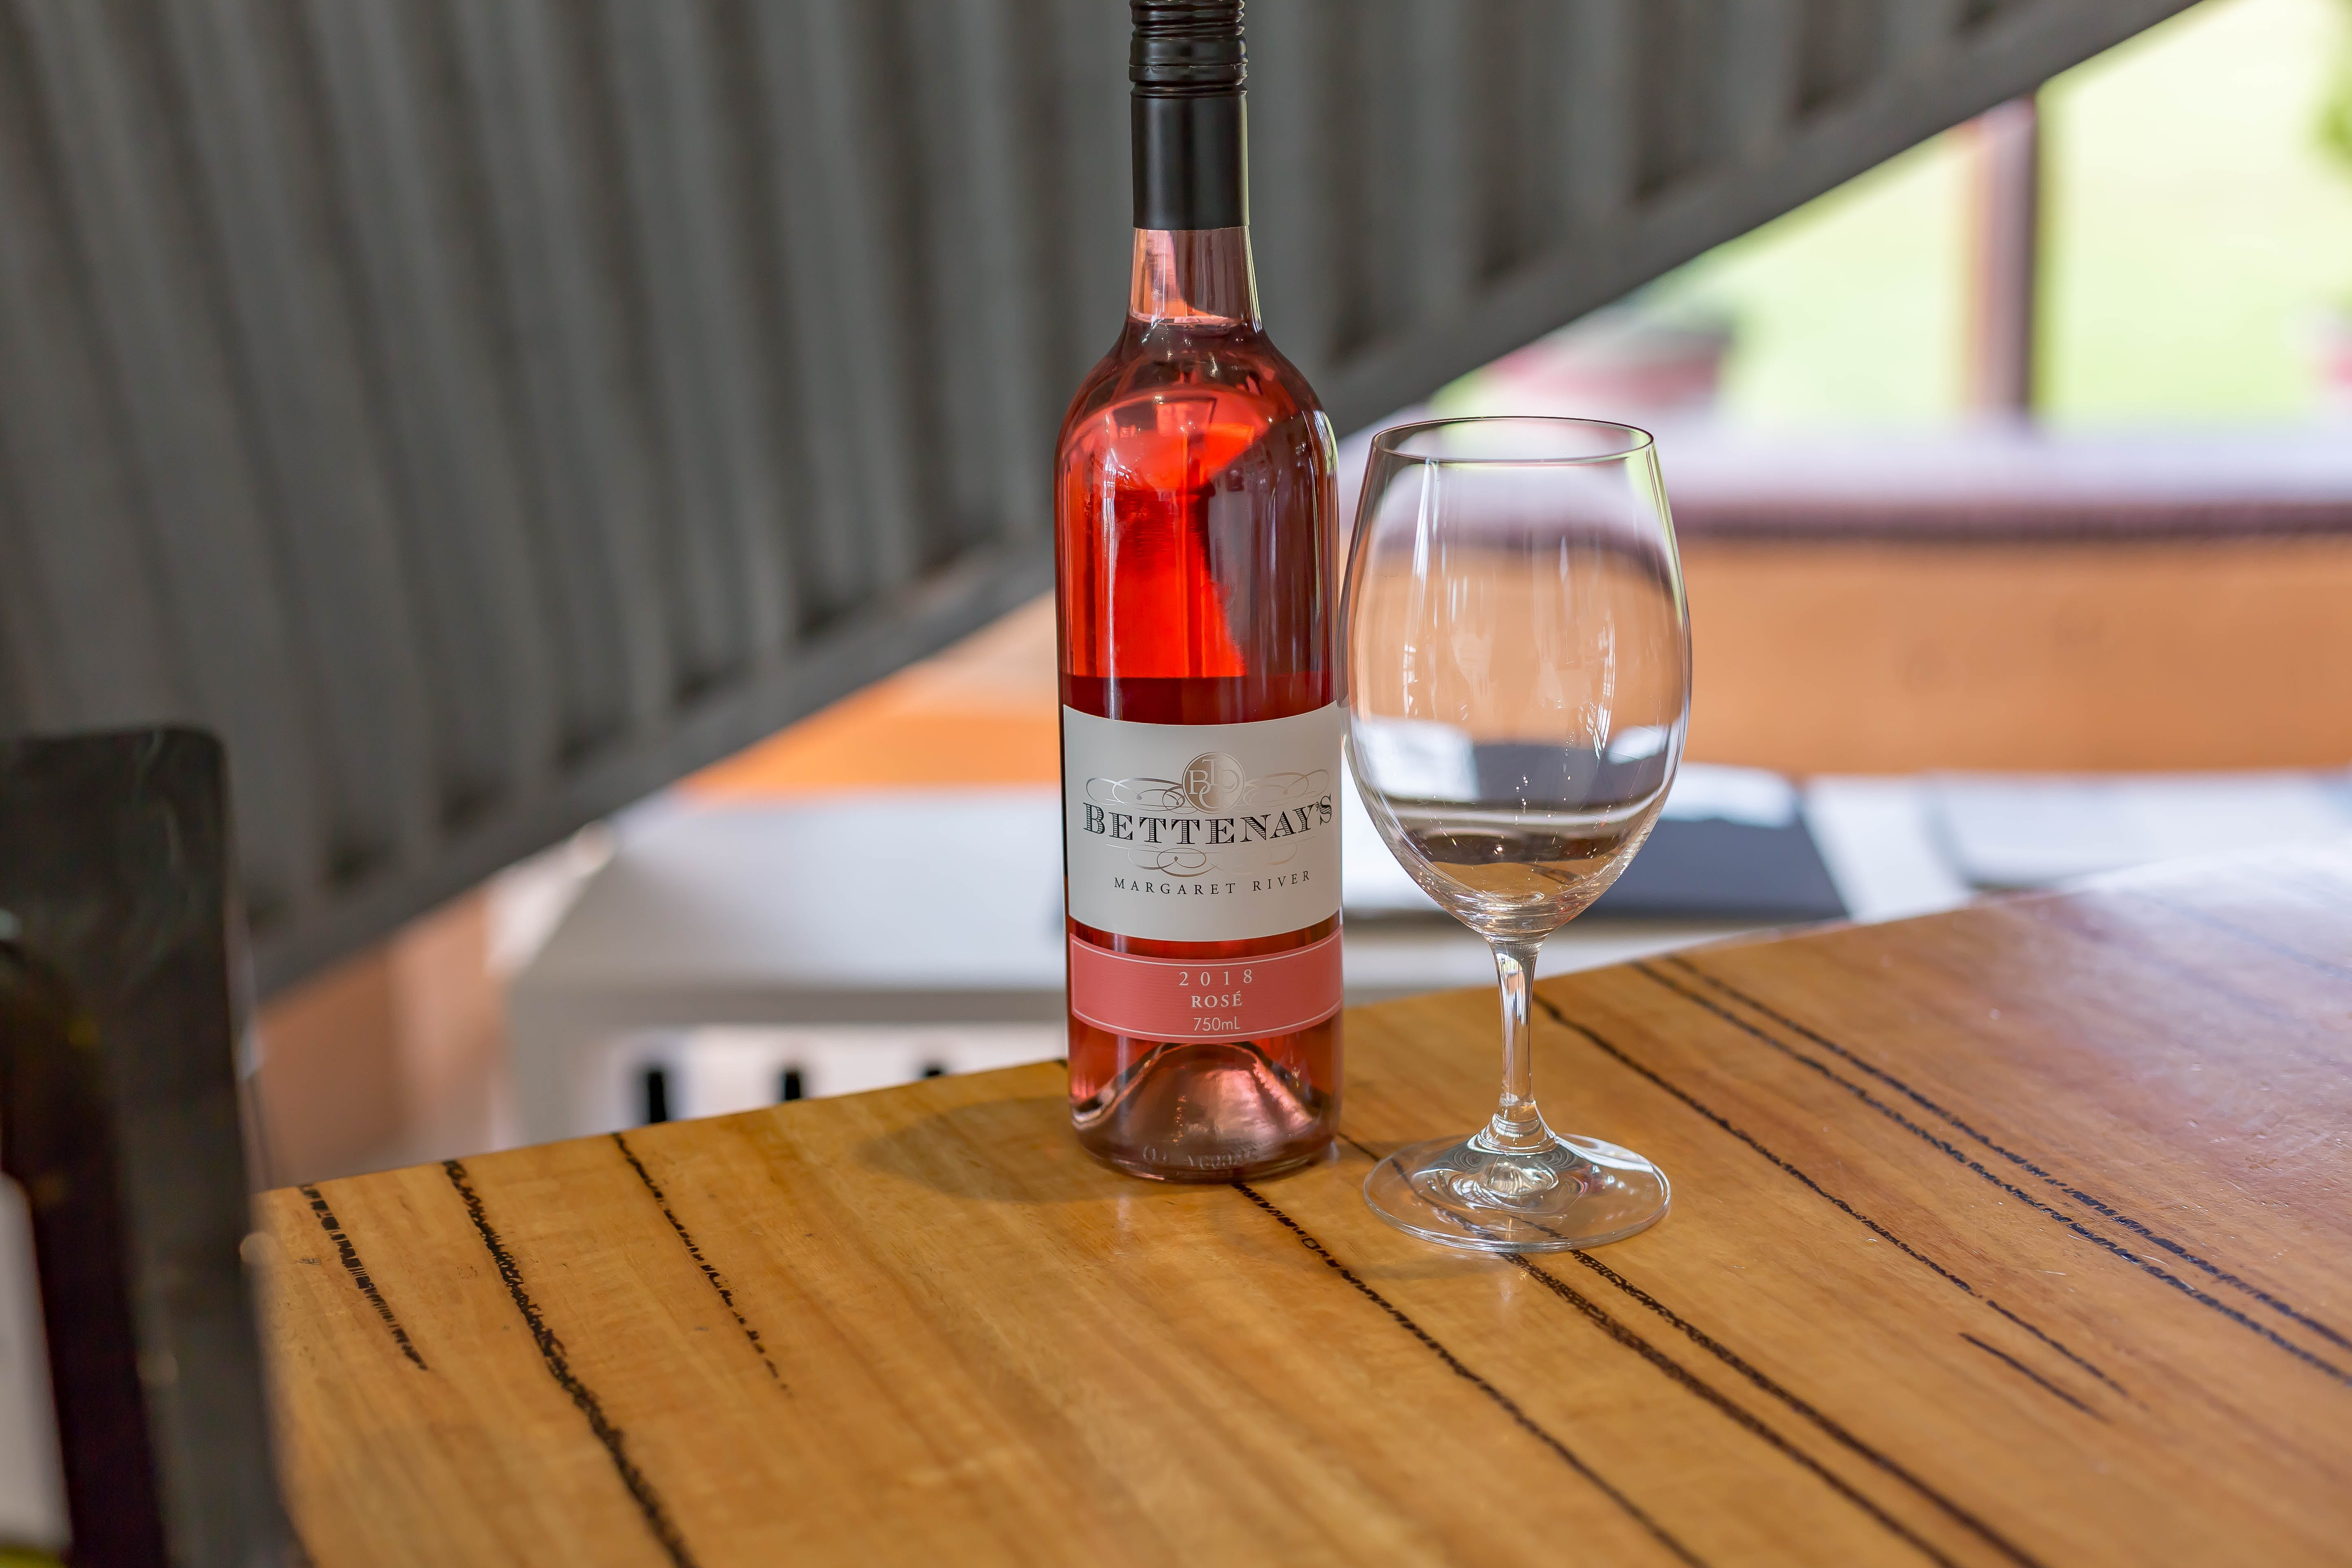 Bettenays Margaret River - Nougat and Wine - Sydney Tourism